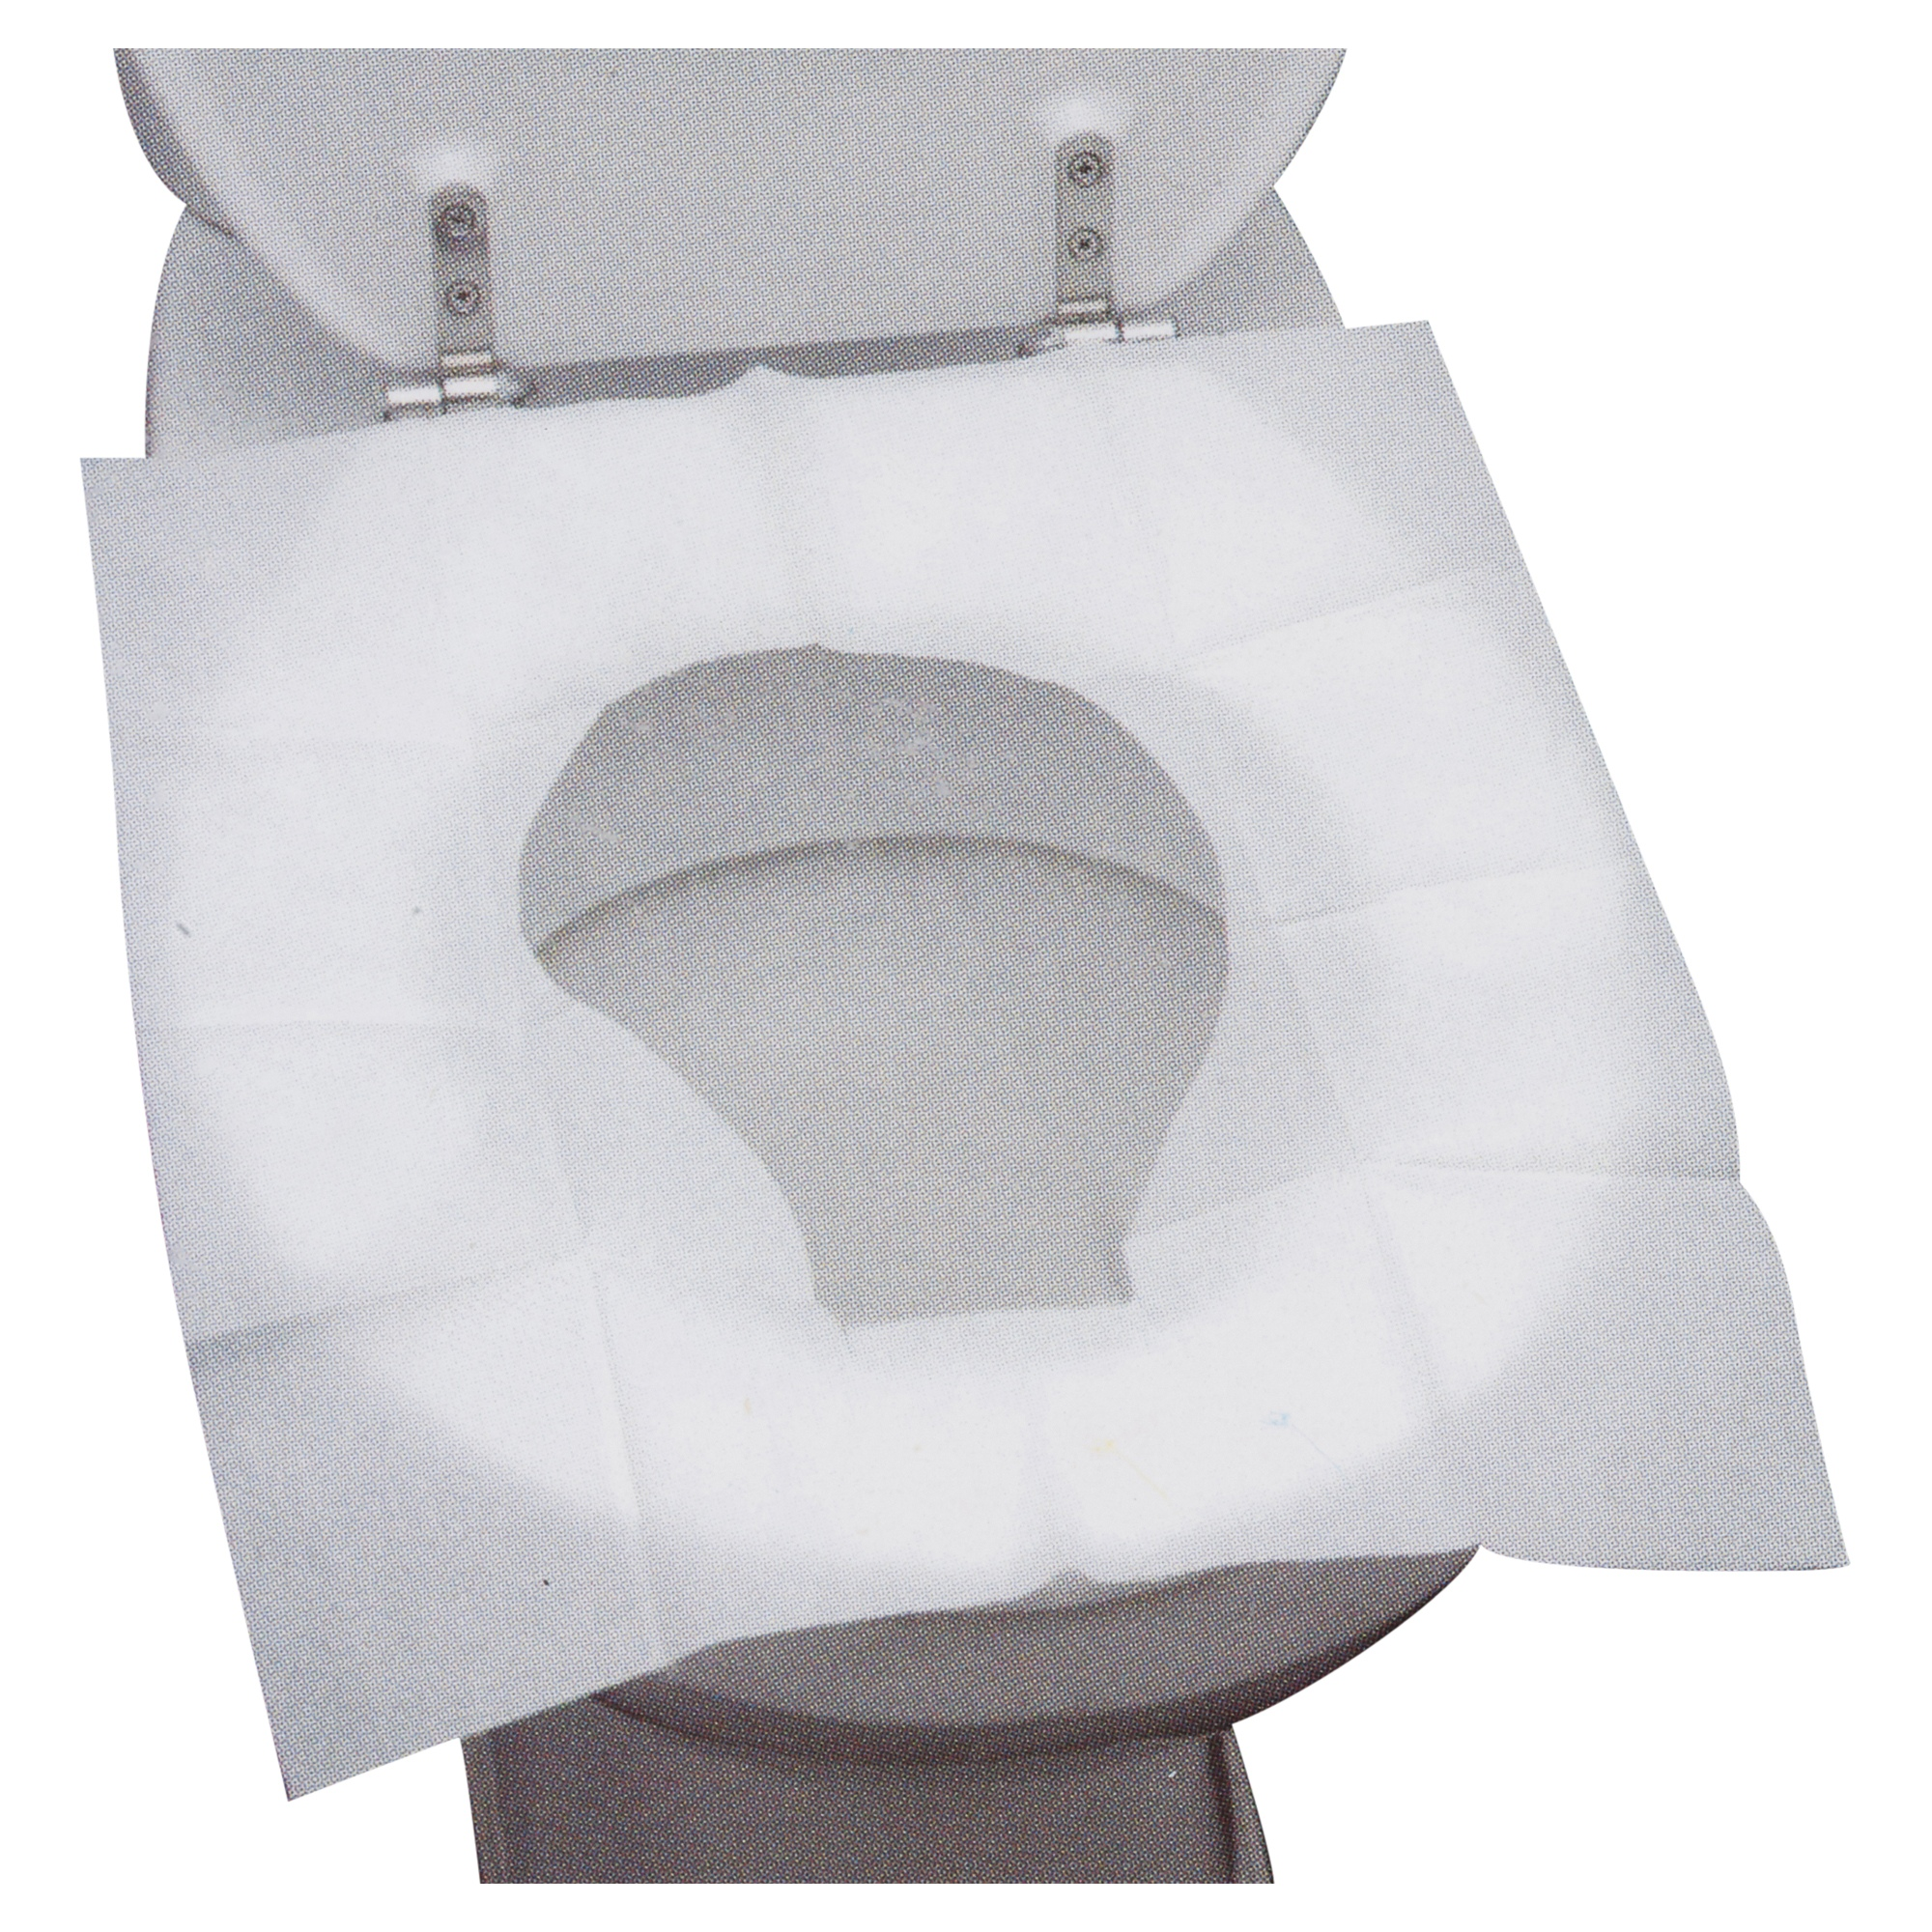 50 Disposable Toilet Seat Covers Hygienic Flushable Travel